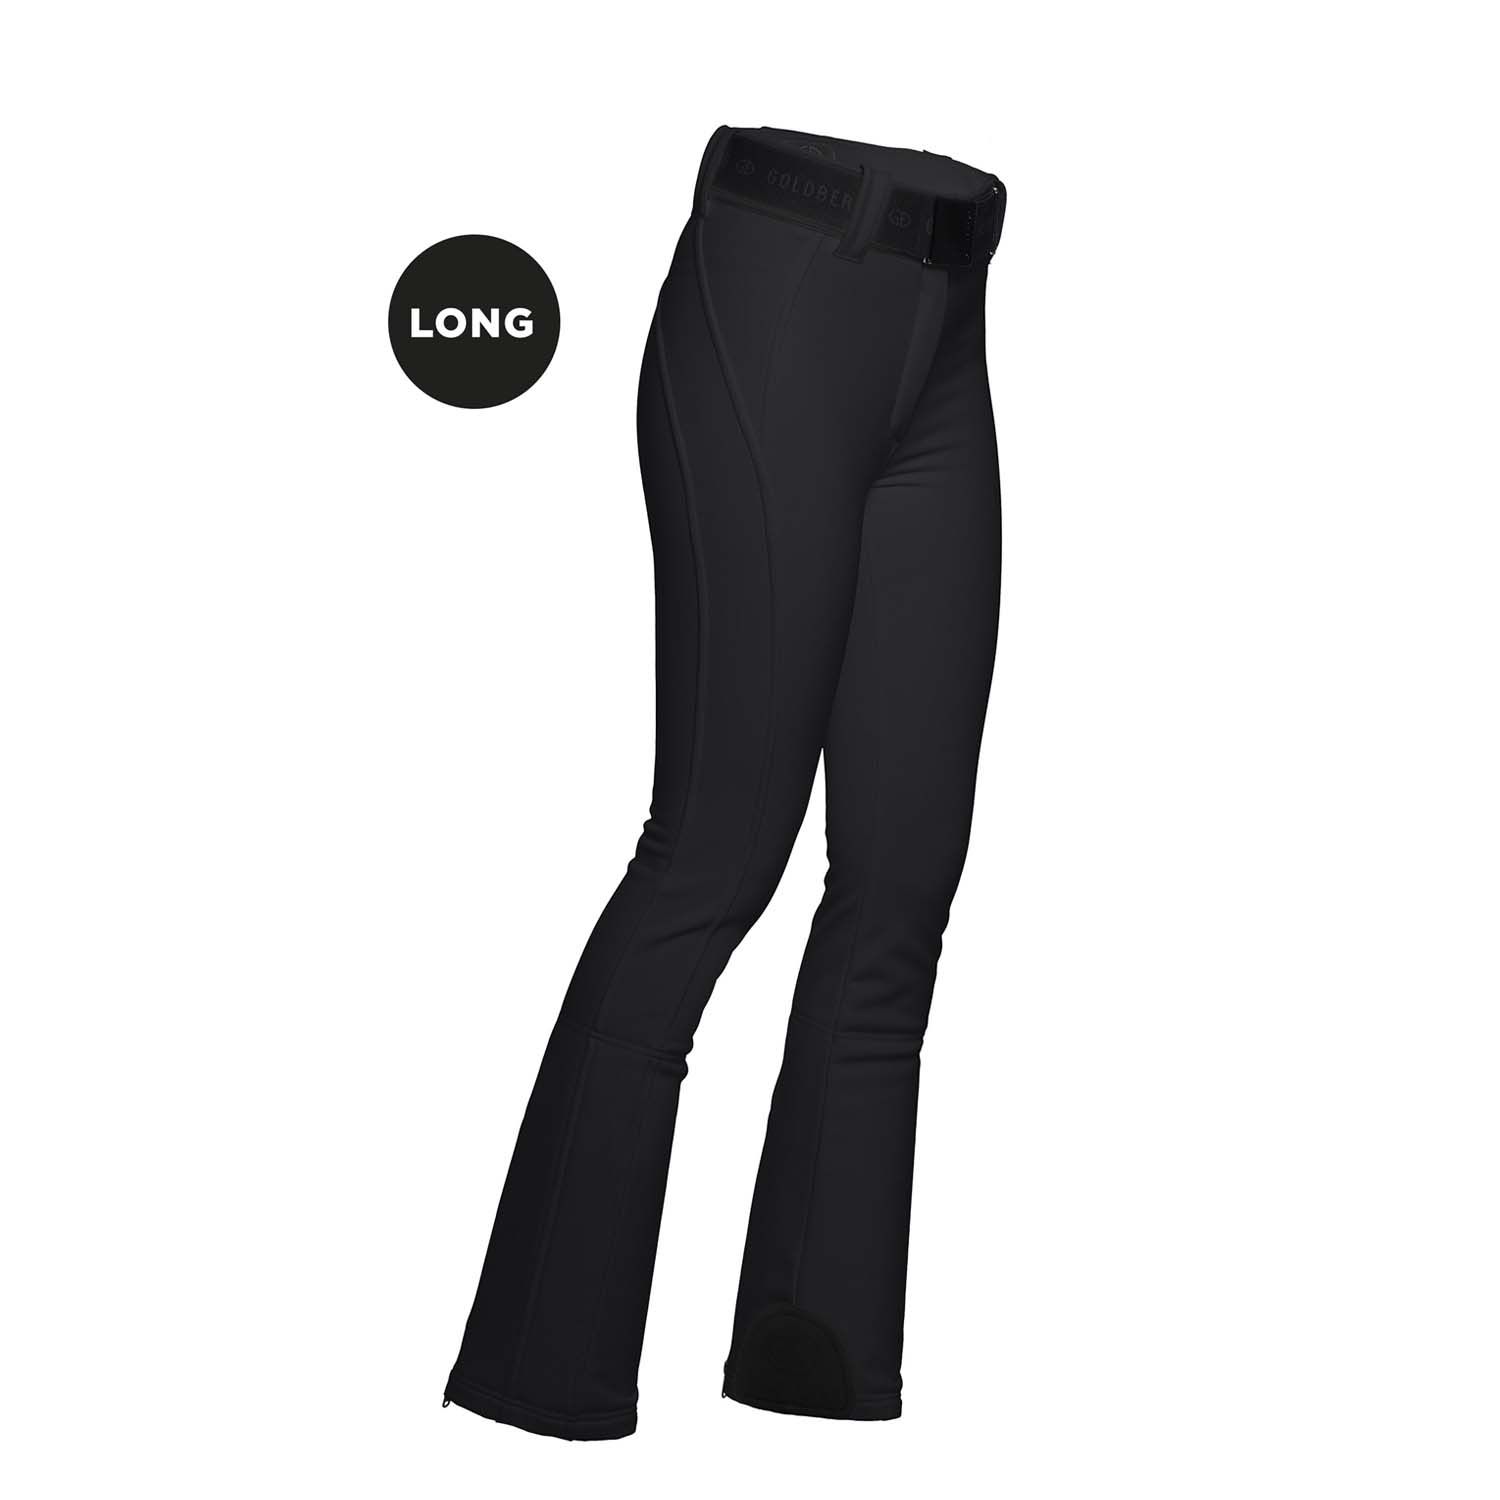 Goldbergh Pippa Long Leg Ski Pant Black 2021